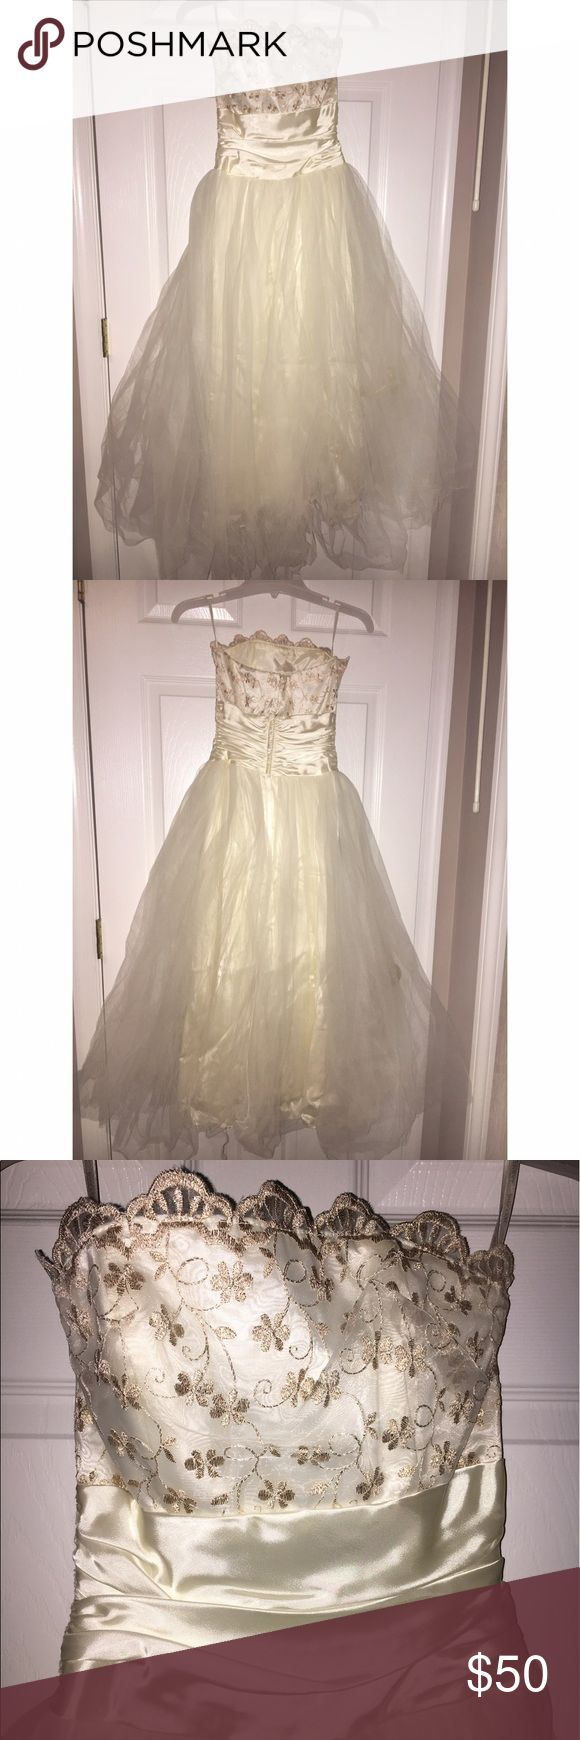 Tea length formal dress Jessica McClintock tulle tea length dress. Worn once. Jessica McClintock Dresses Strapless